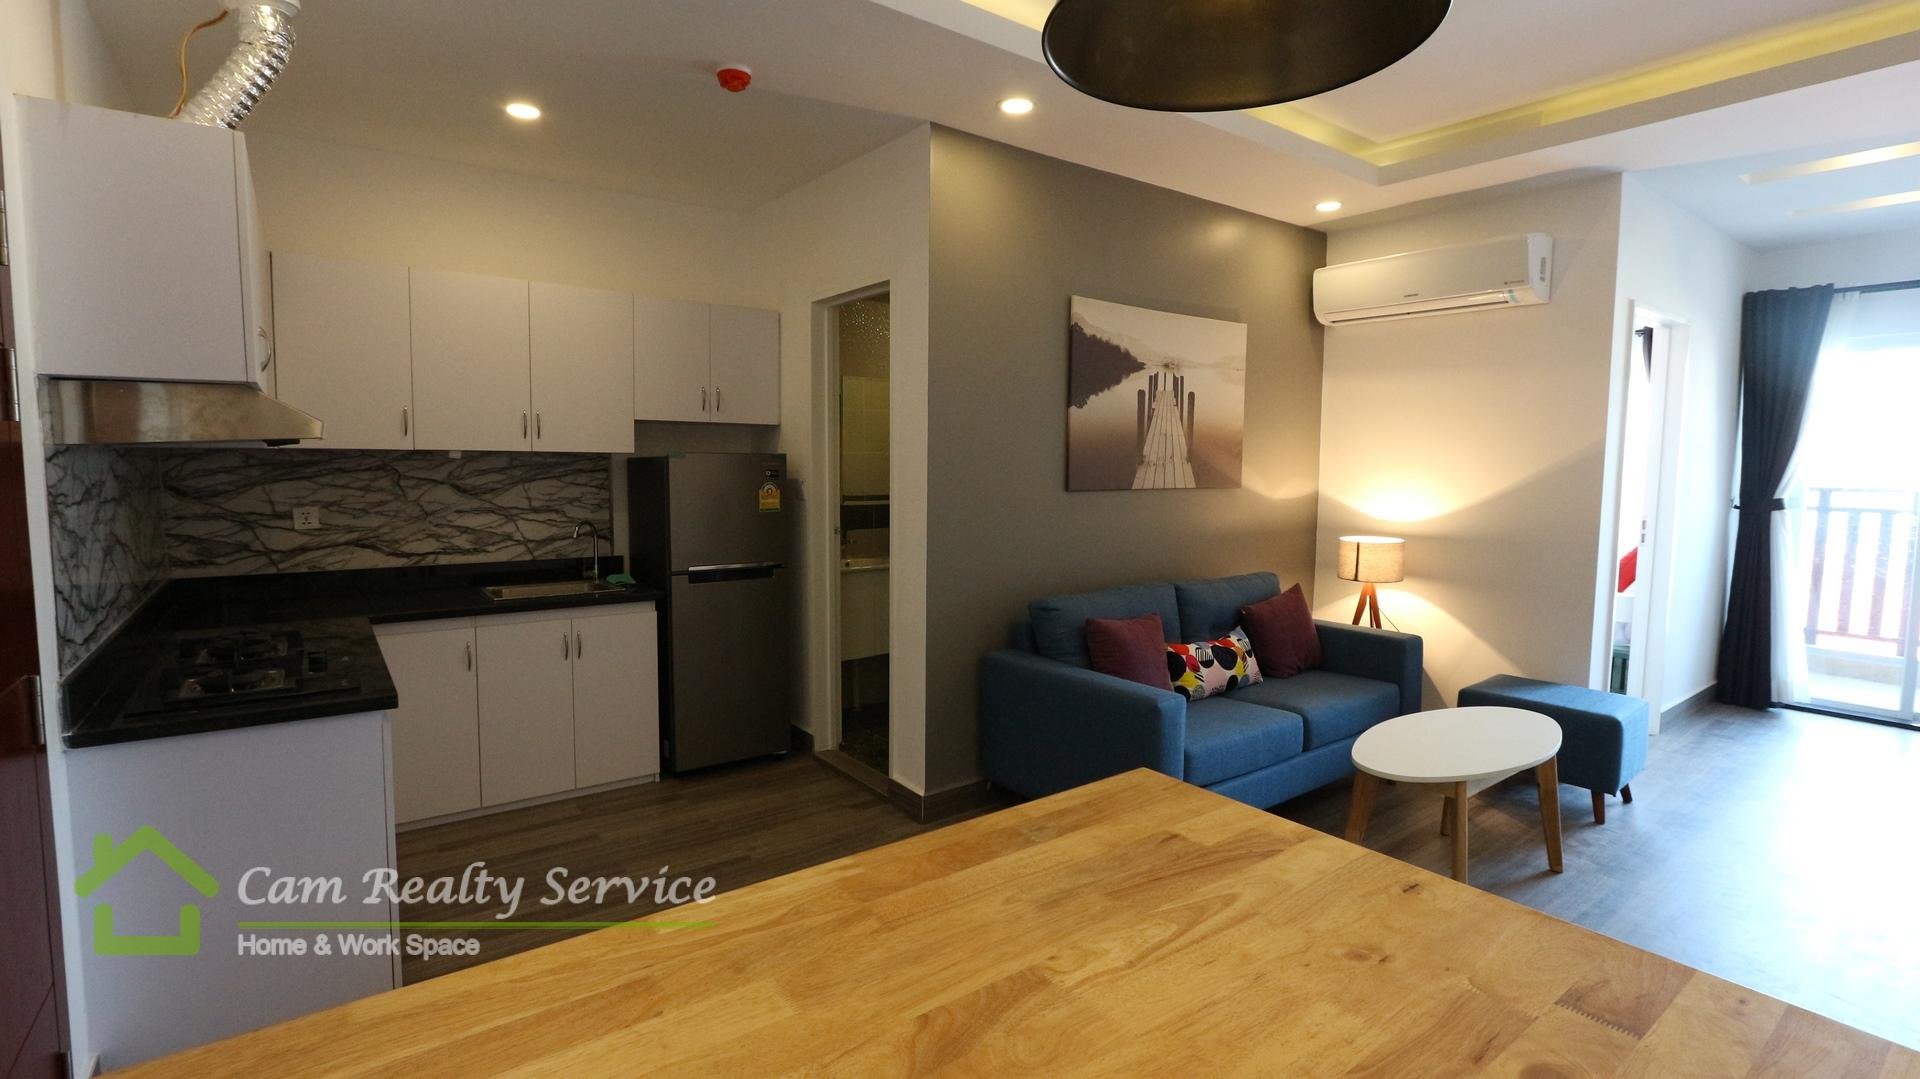 BKK3 area| Modern style 1 bedroom apartment for rent| 600$/month| Pool & Gym